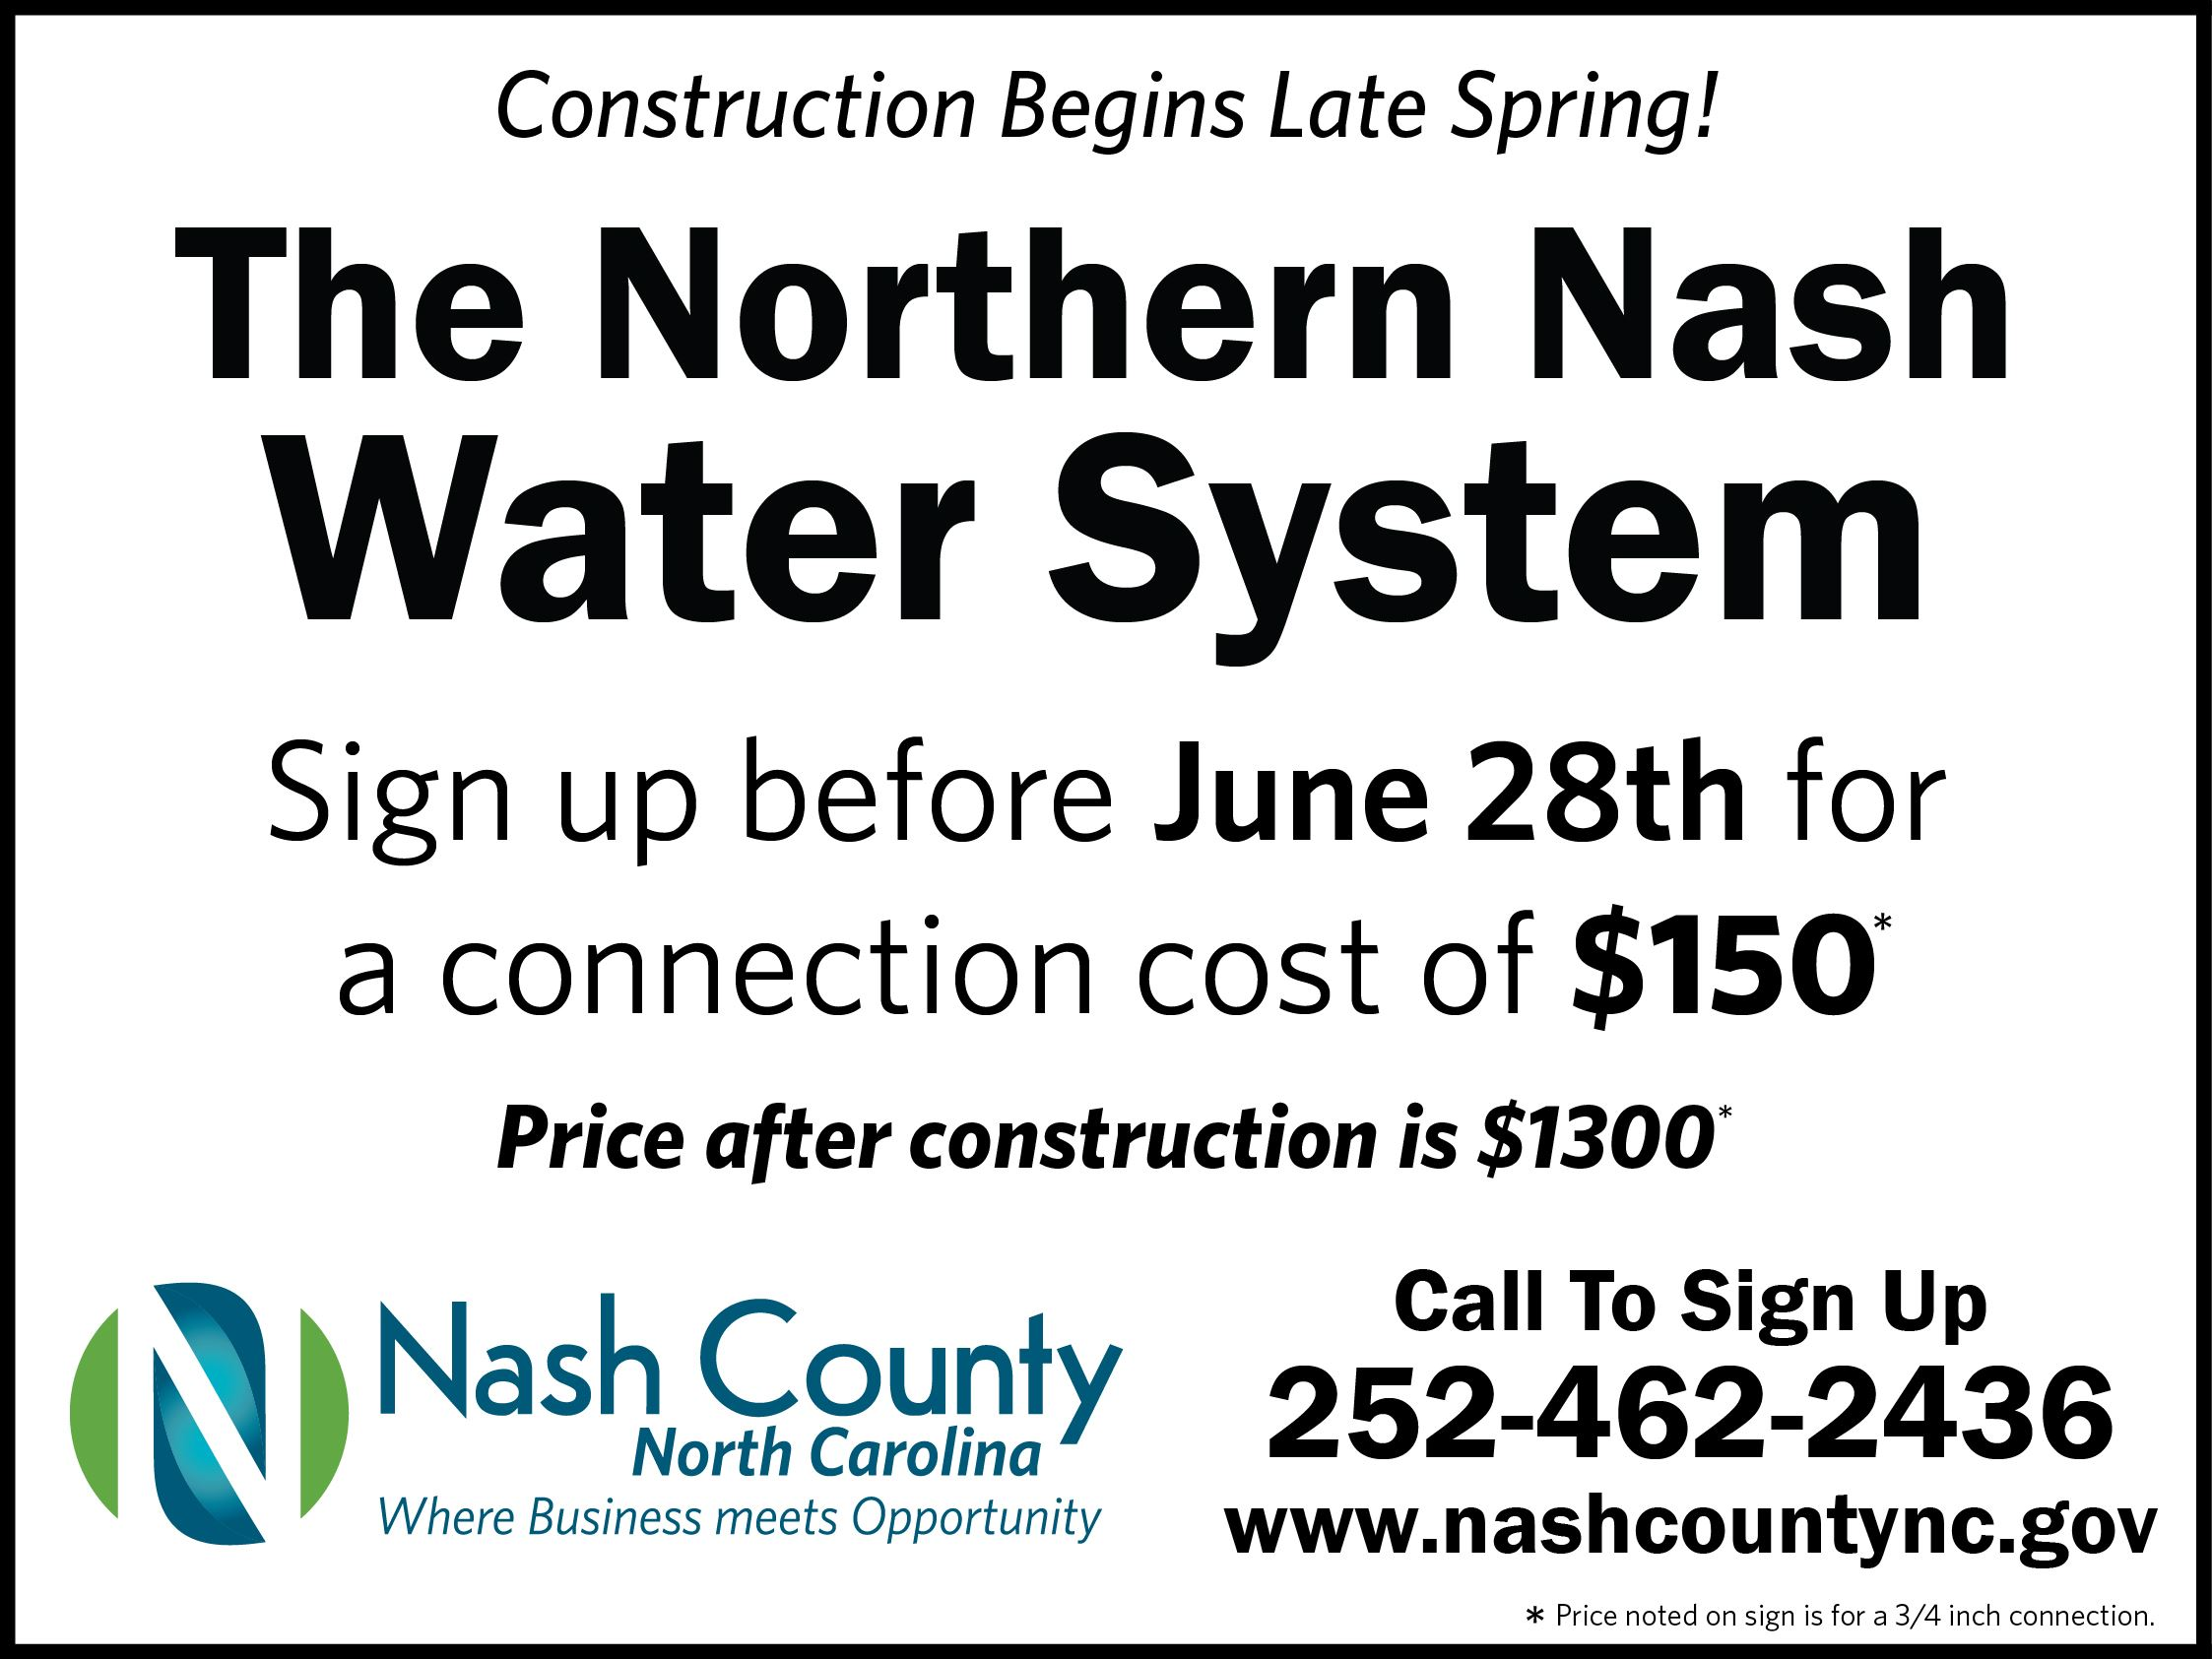 Northern Nash Water System